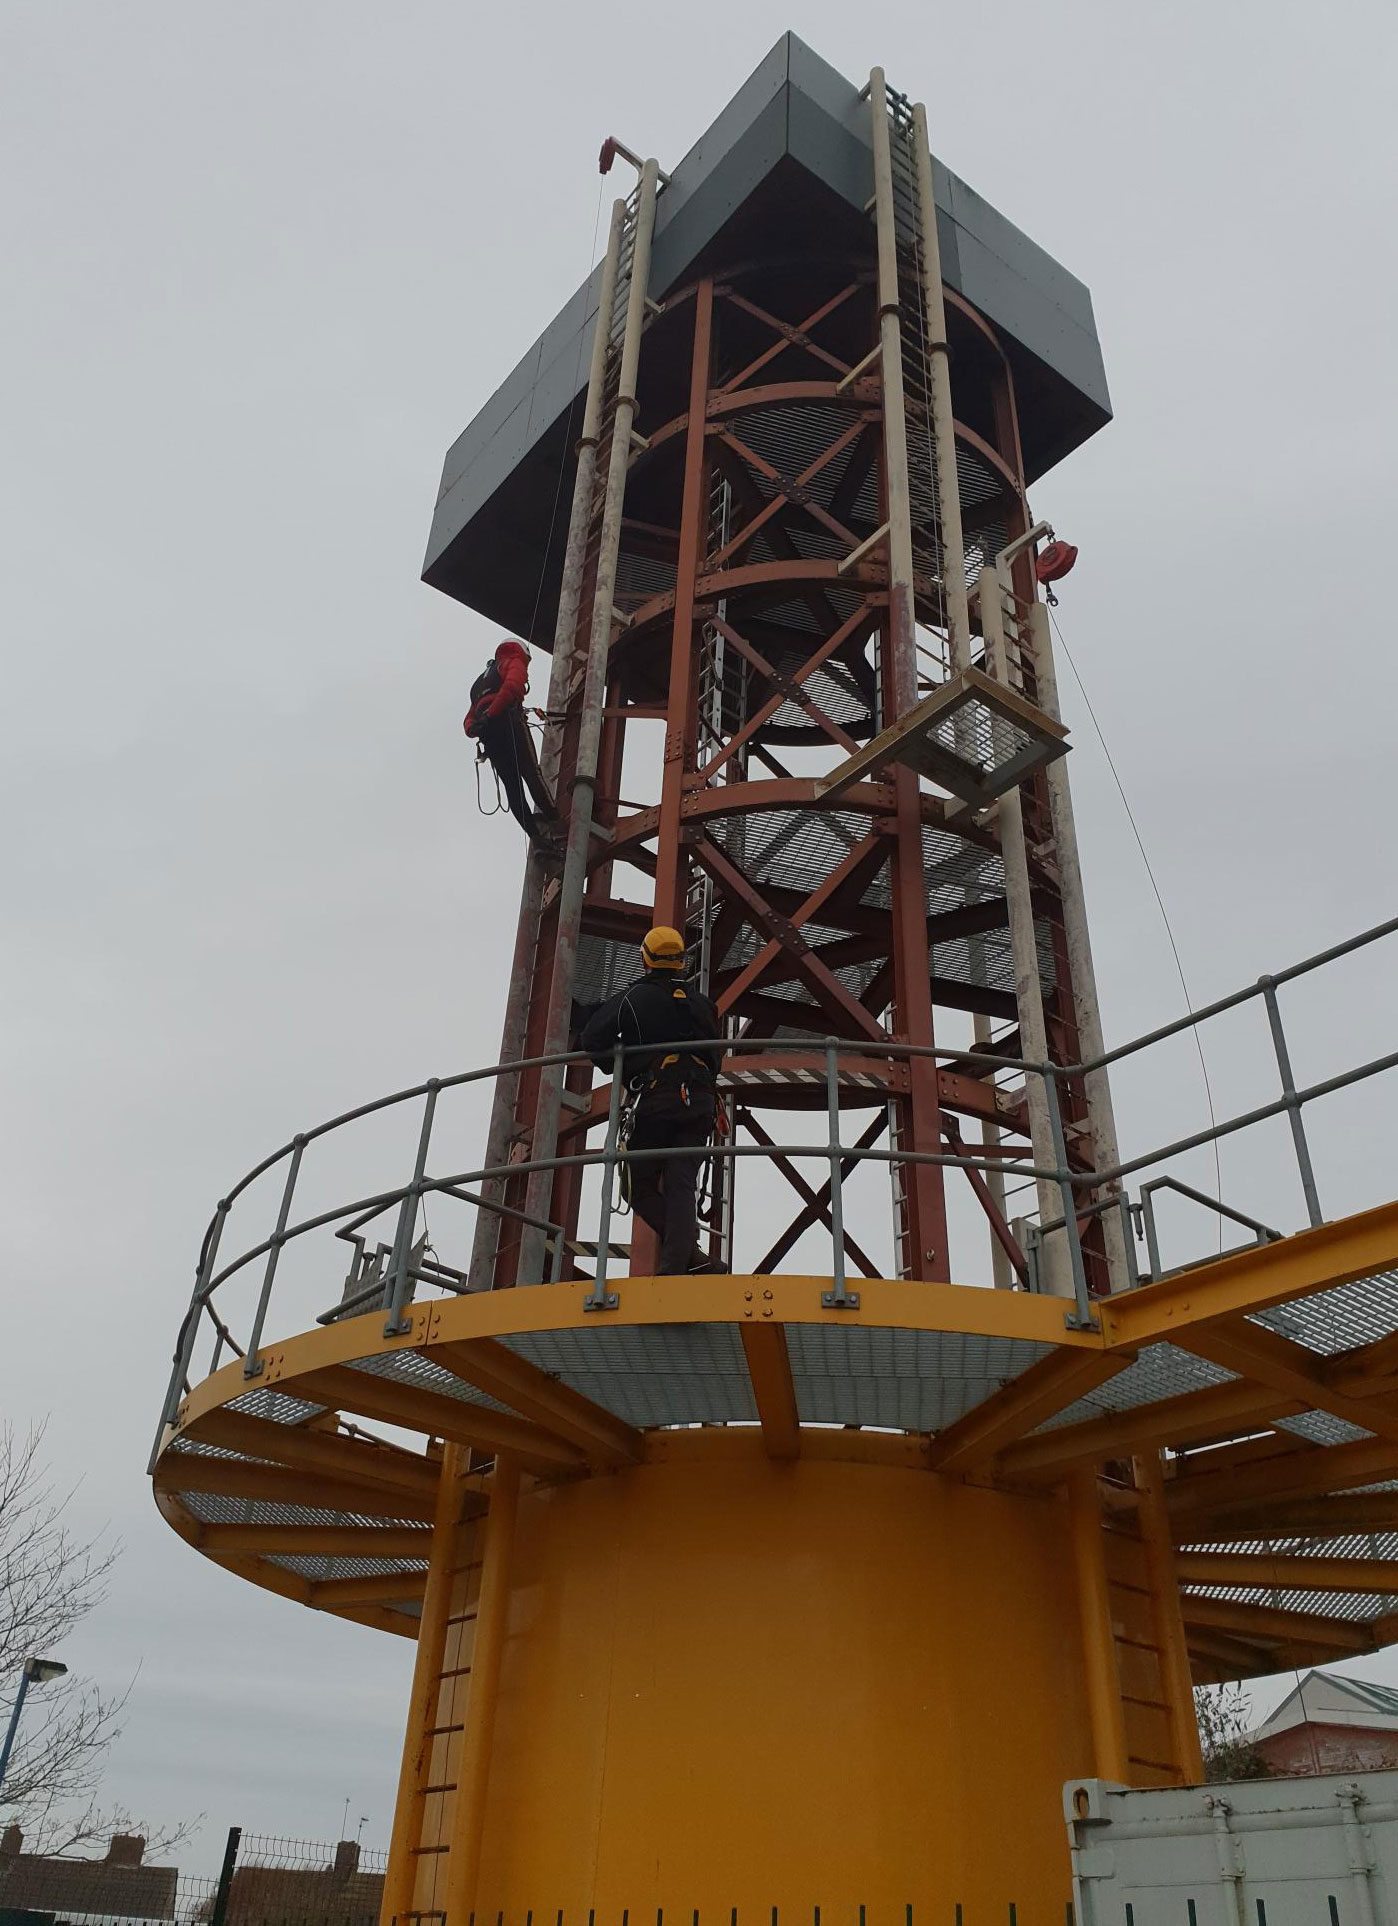 Organisation Image (Offshore Wind Skills Centre: Working at Heights)